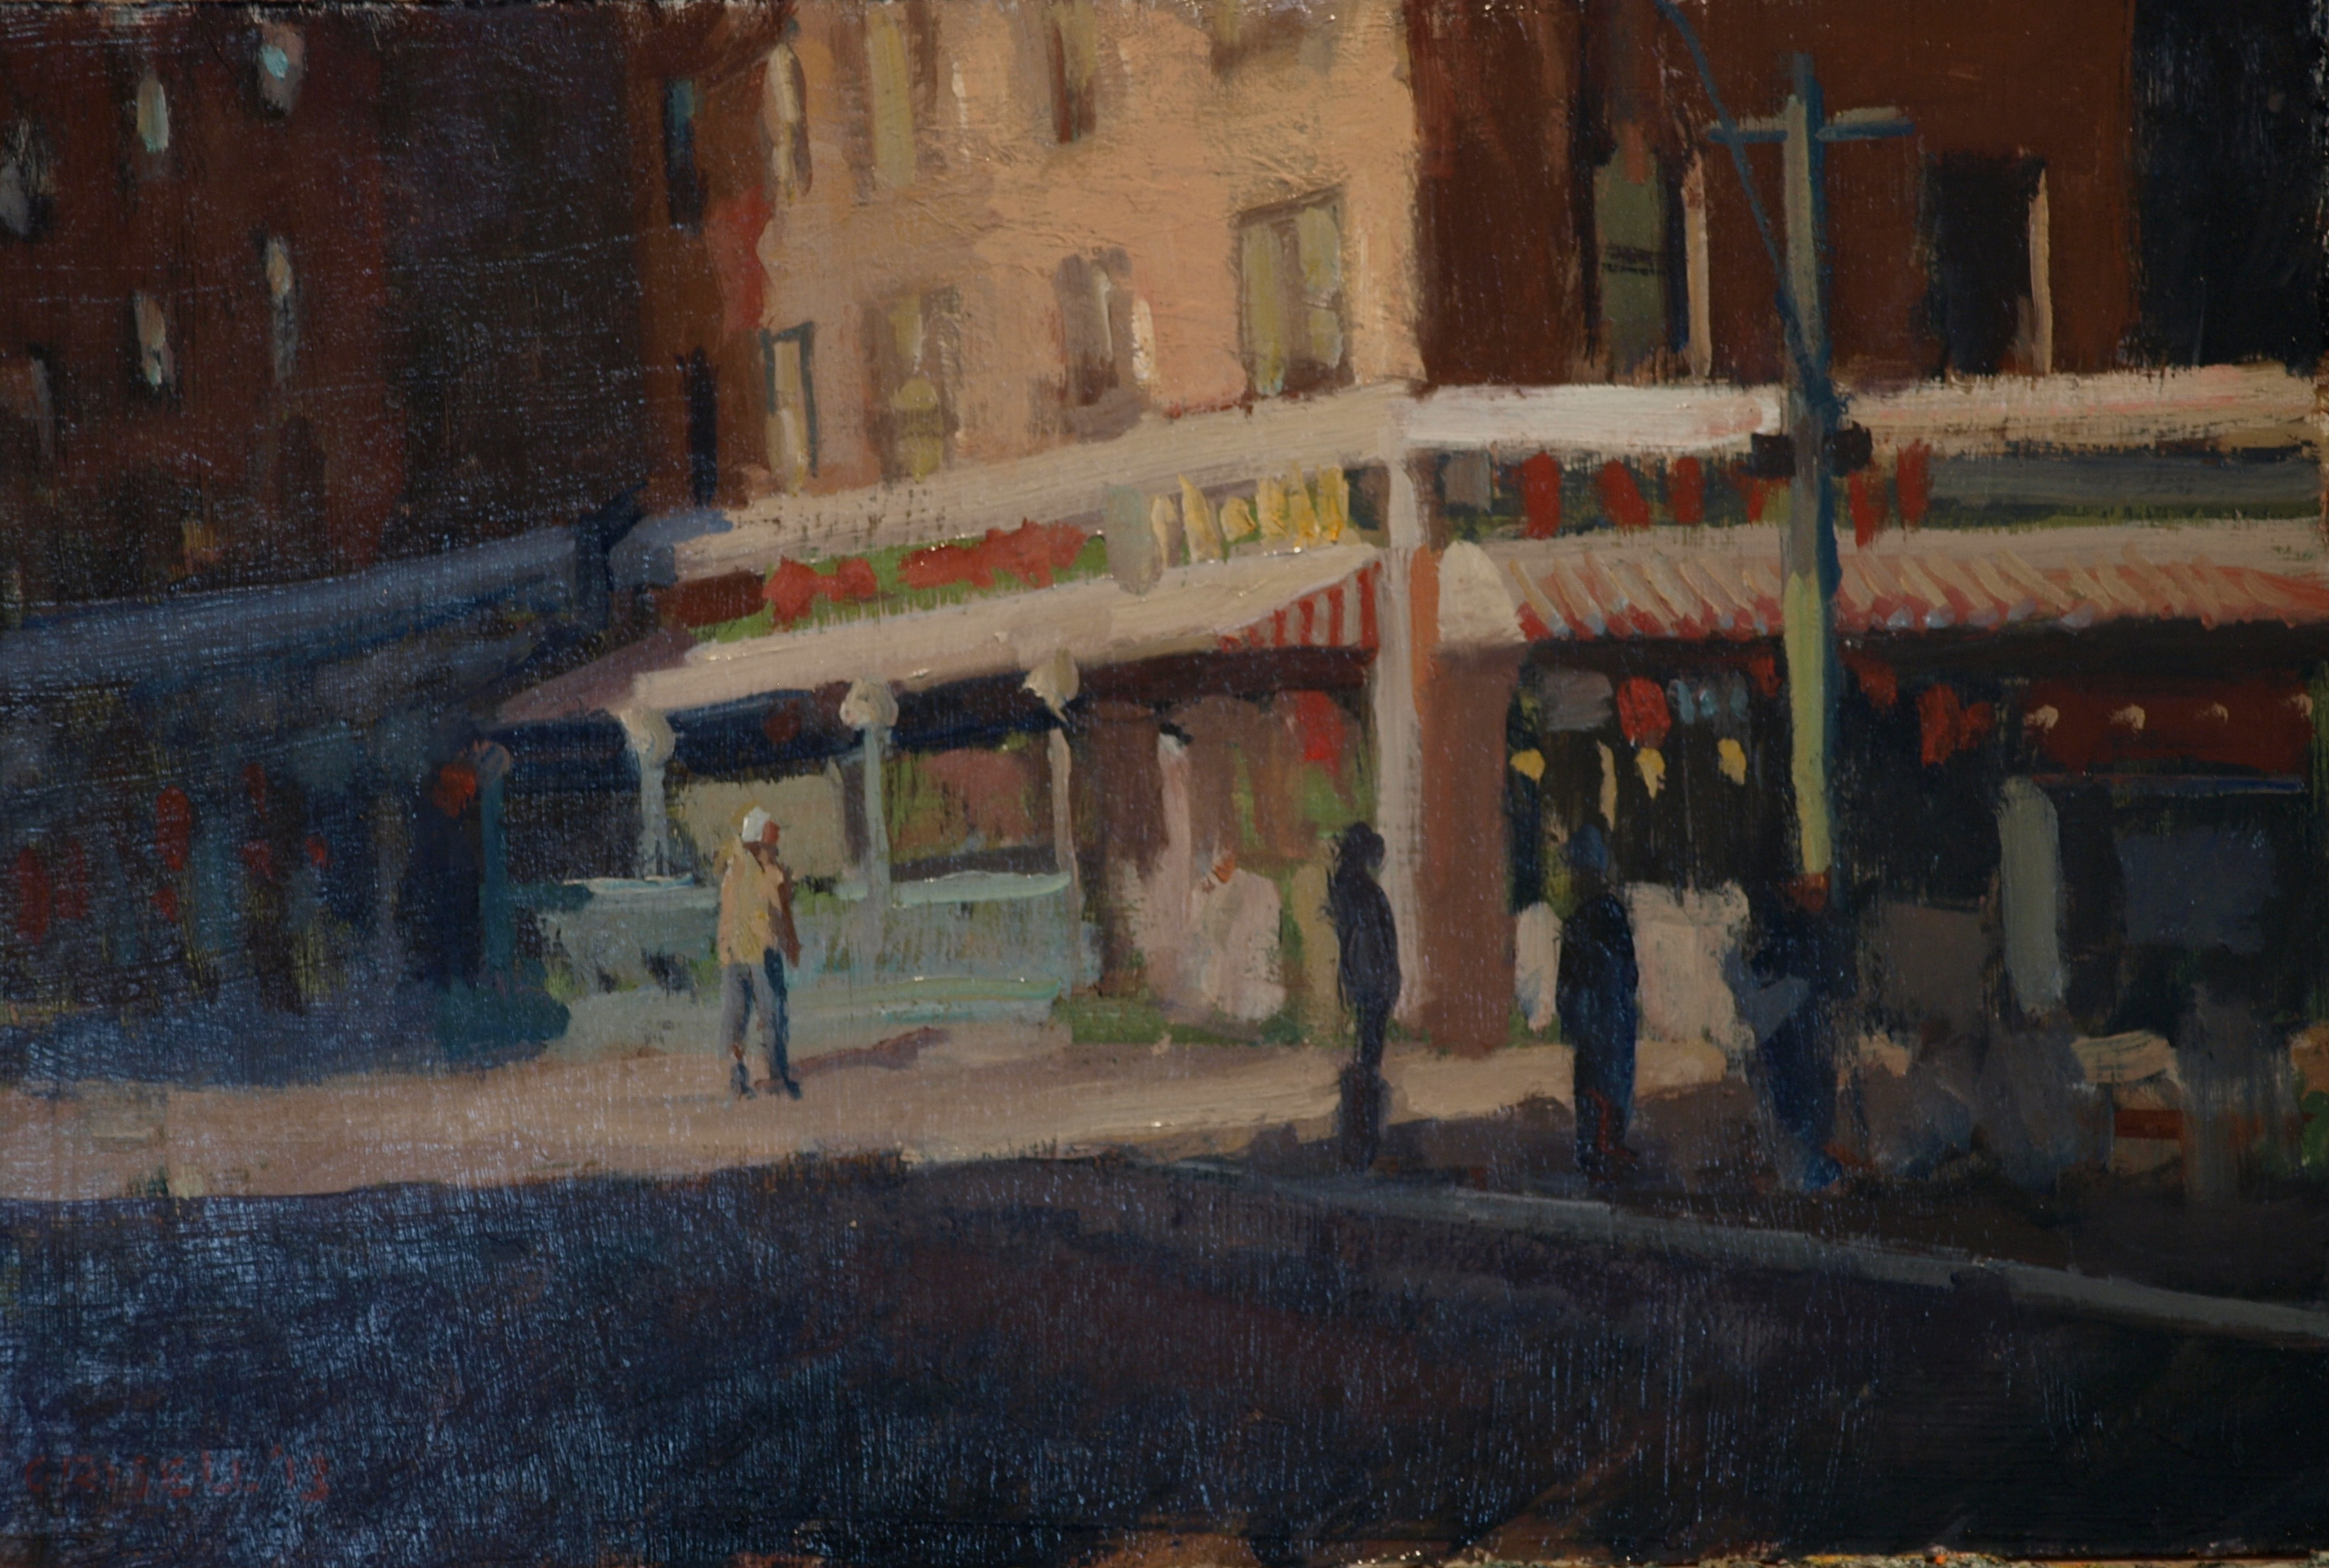 Eighth Street, Oil on Panel, 12 x 18 Inches, by Susan Grisell, $275